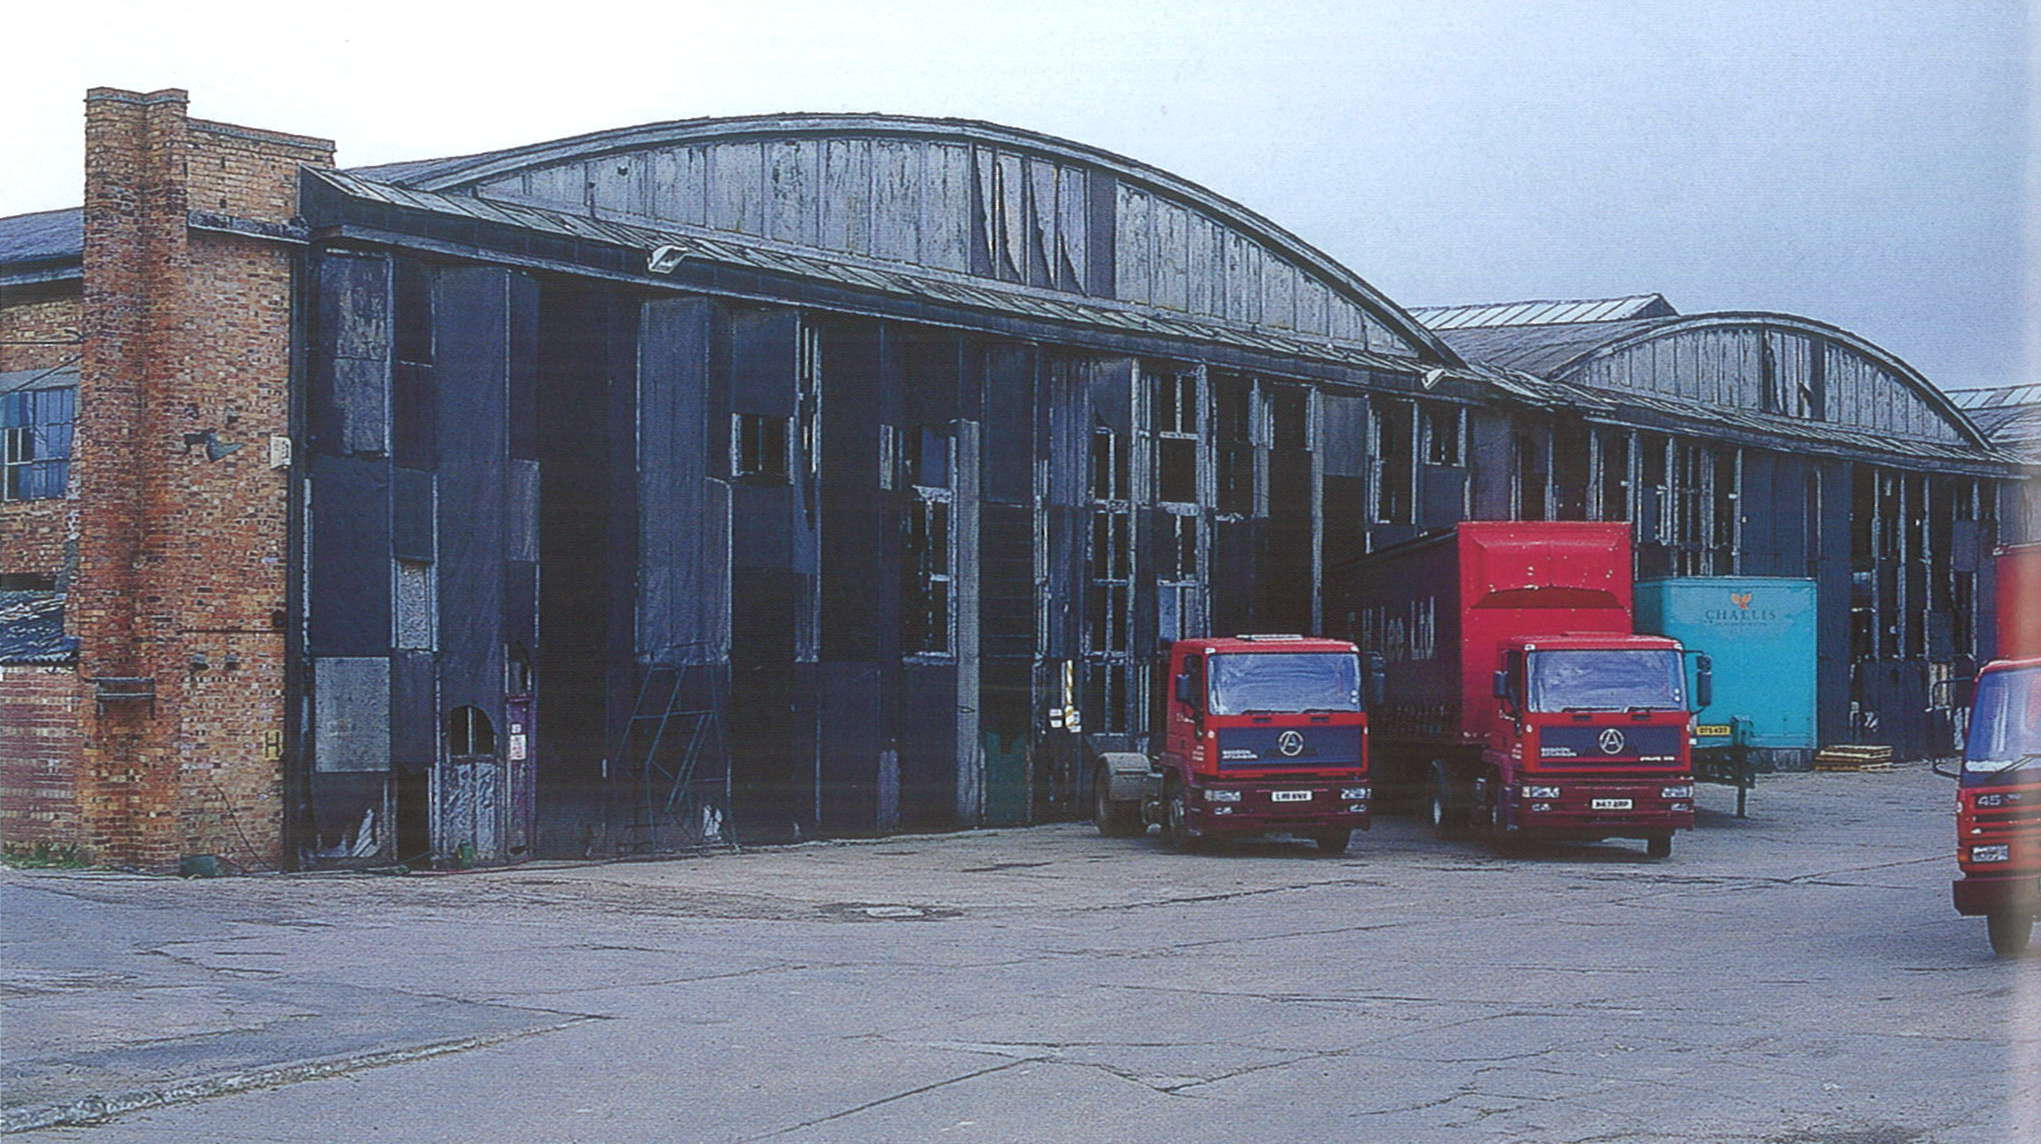 A photograph showing a very wide building, with brick walls and a metal roof divided into curved sections. Three red trucks are parked on a concrete apron in front of the building.